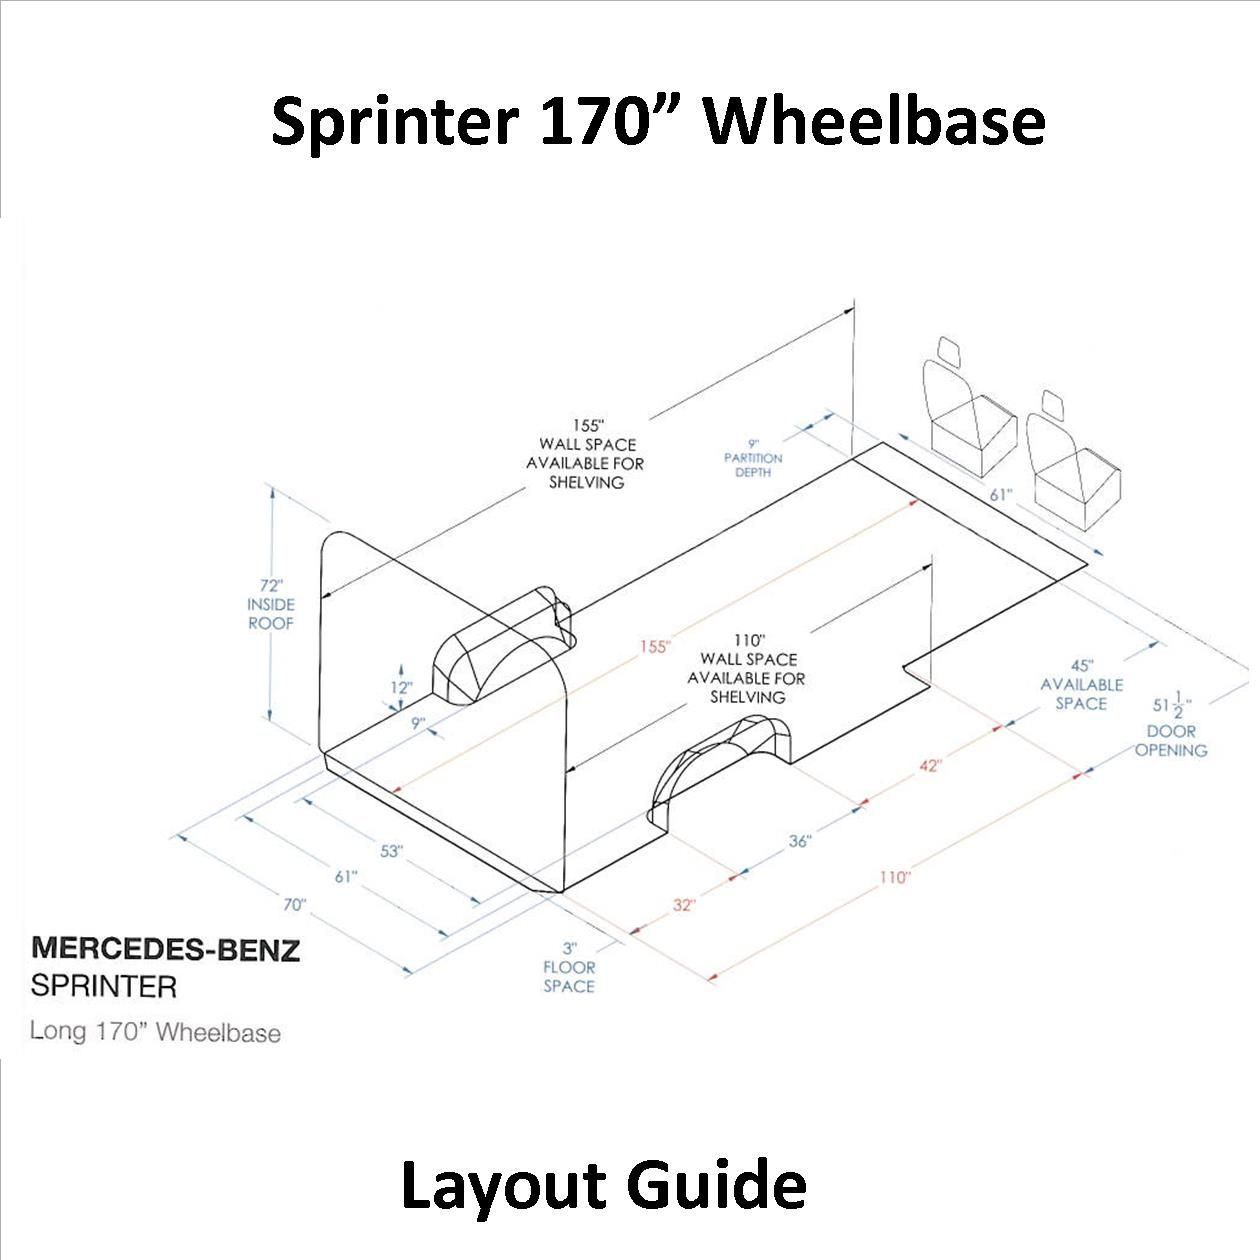 sprinter layout guide 170\